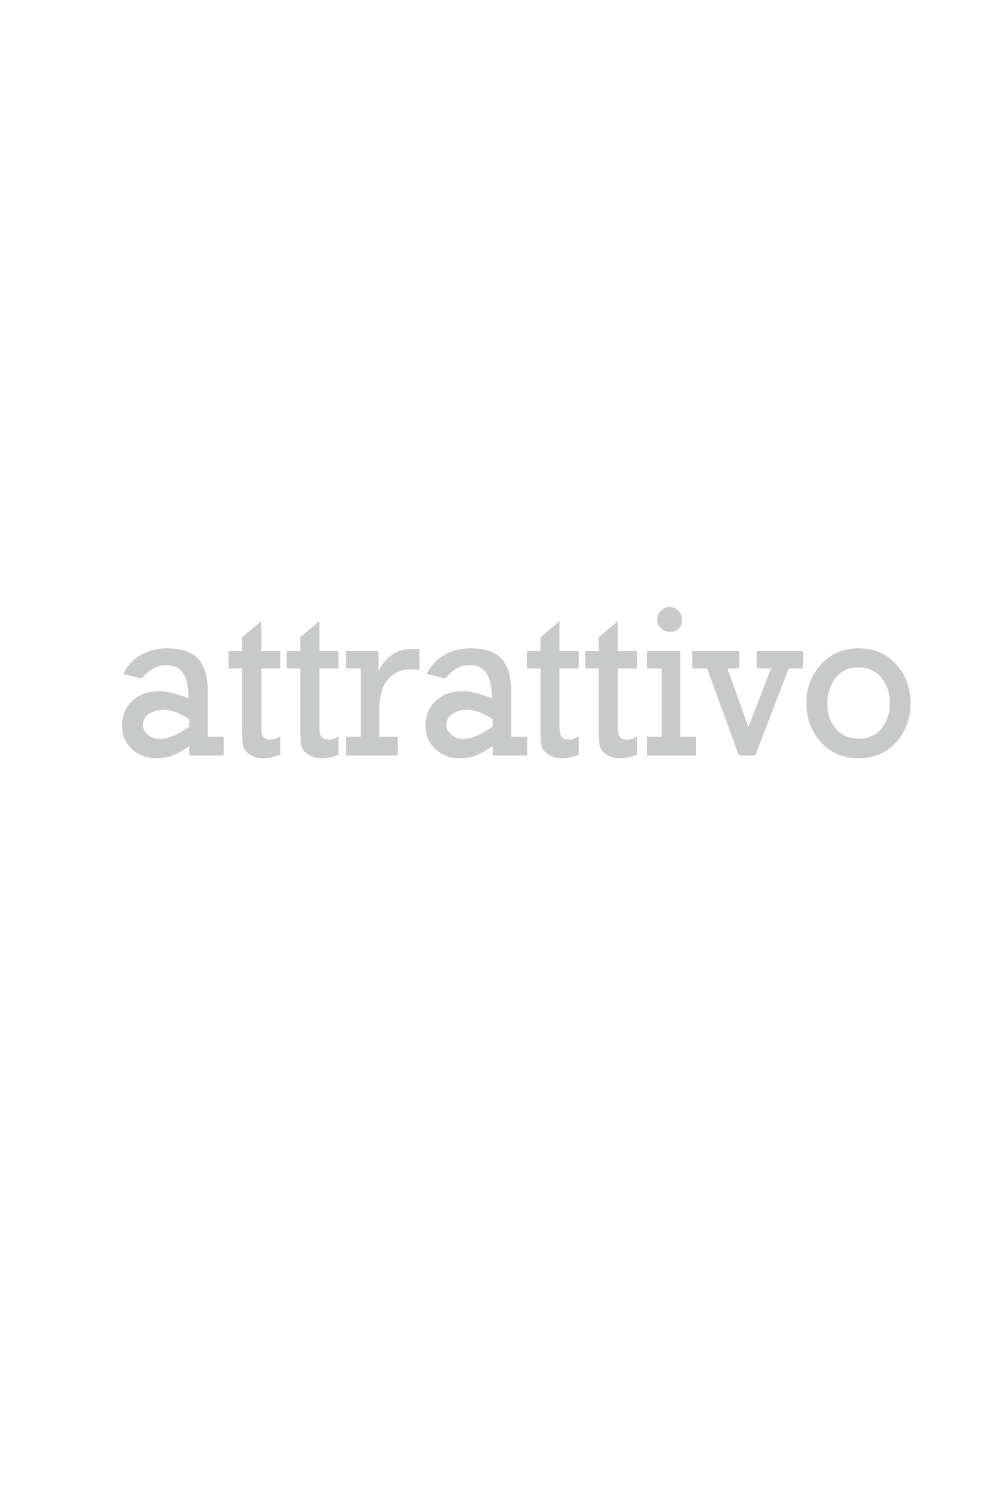 f79d524ceae6 Τοπ από δαντέλα  92215222 - attrattivo